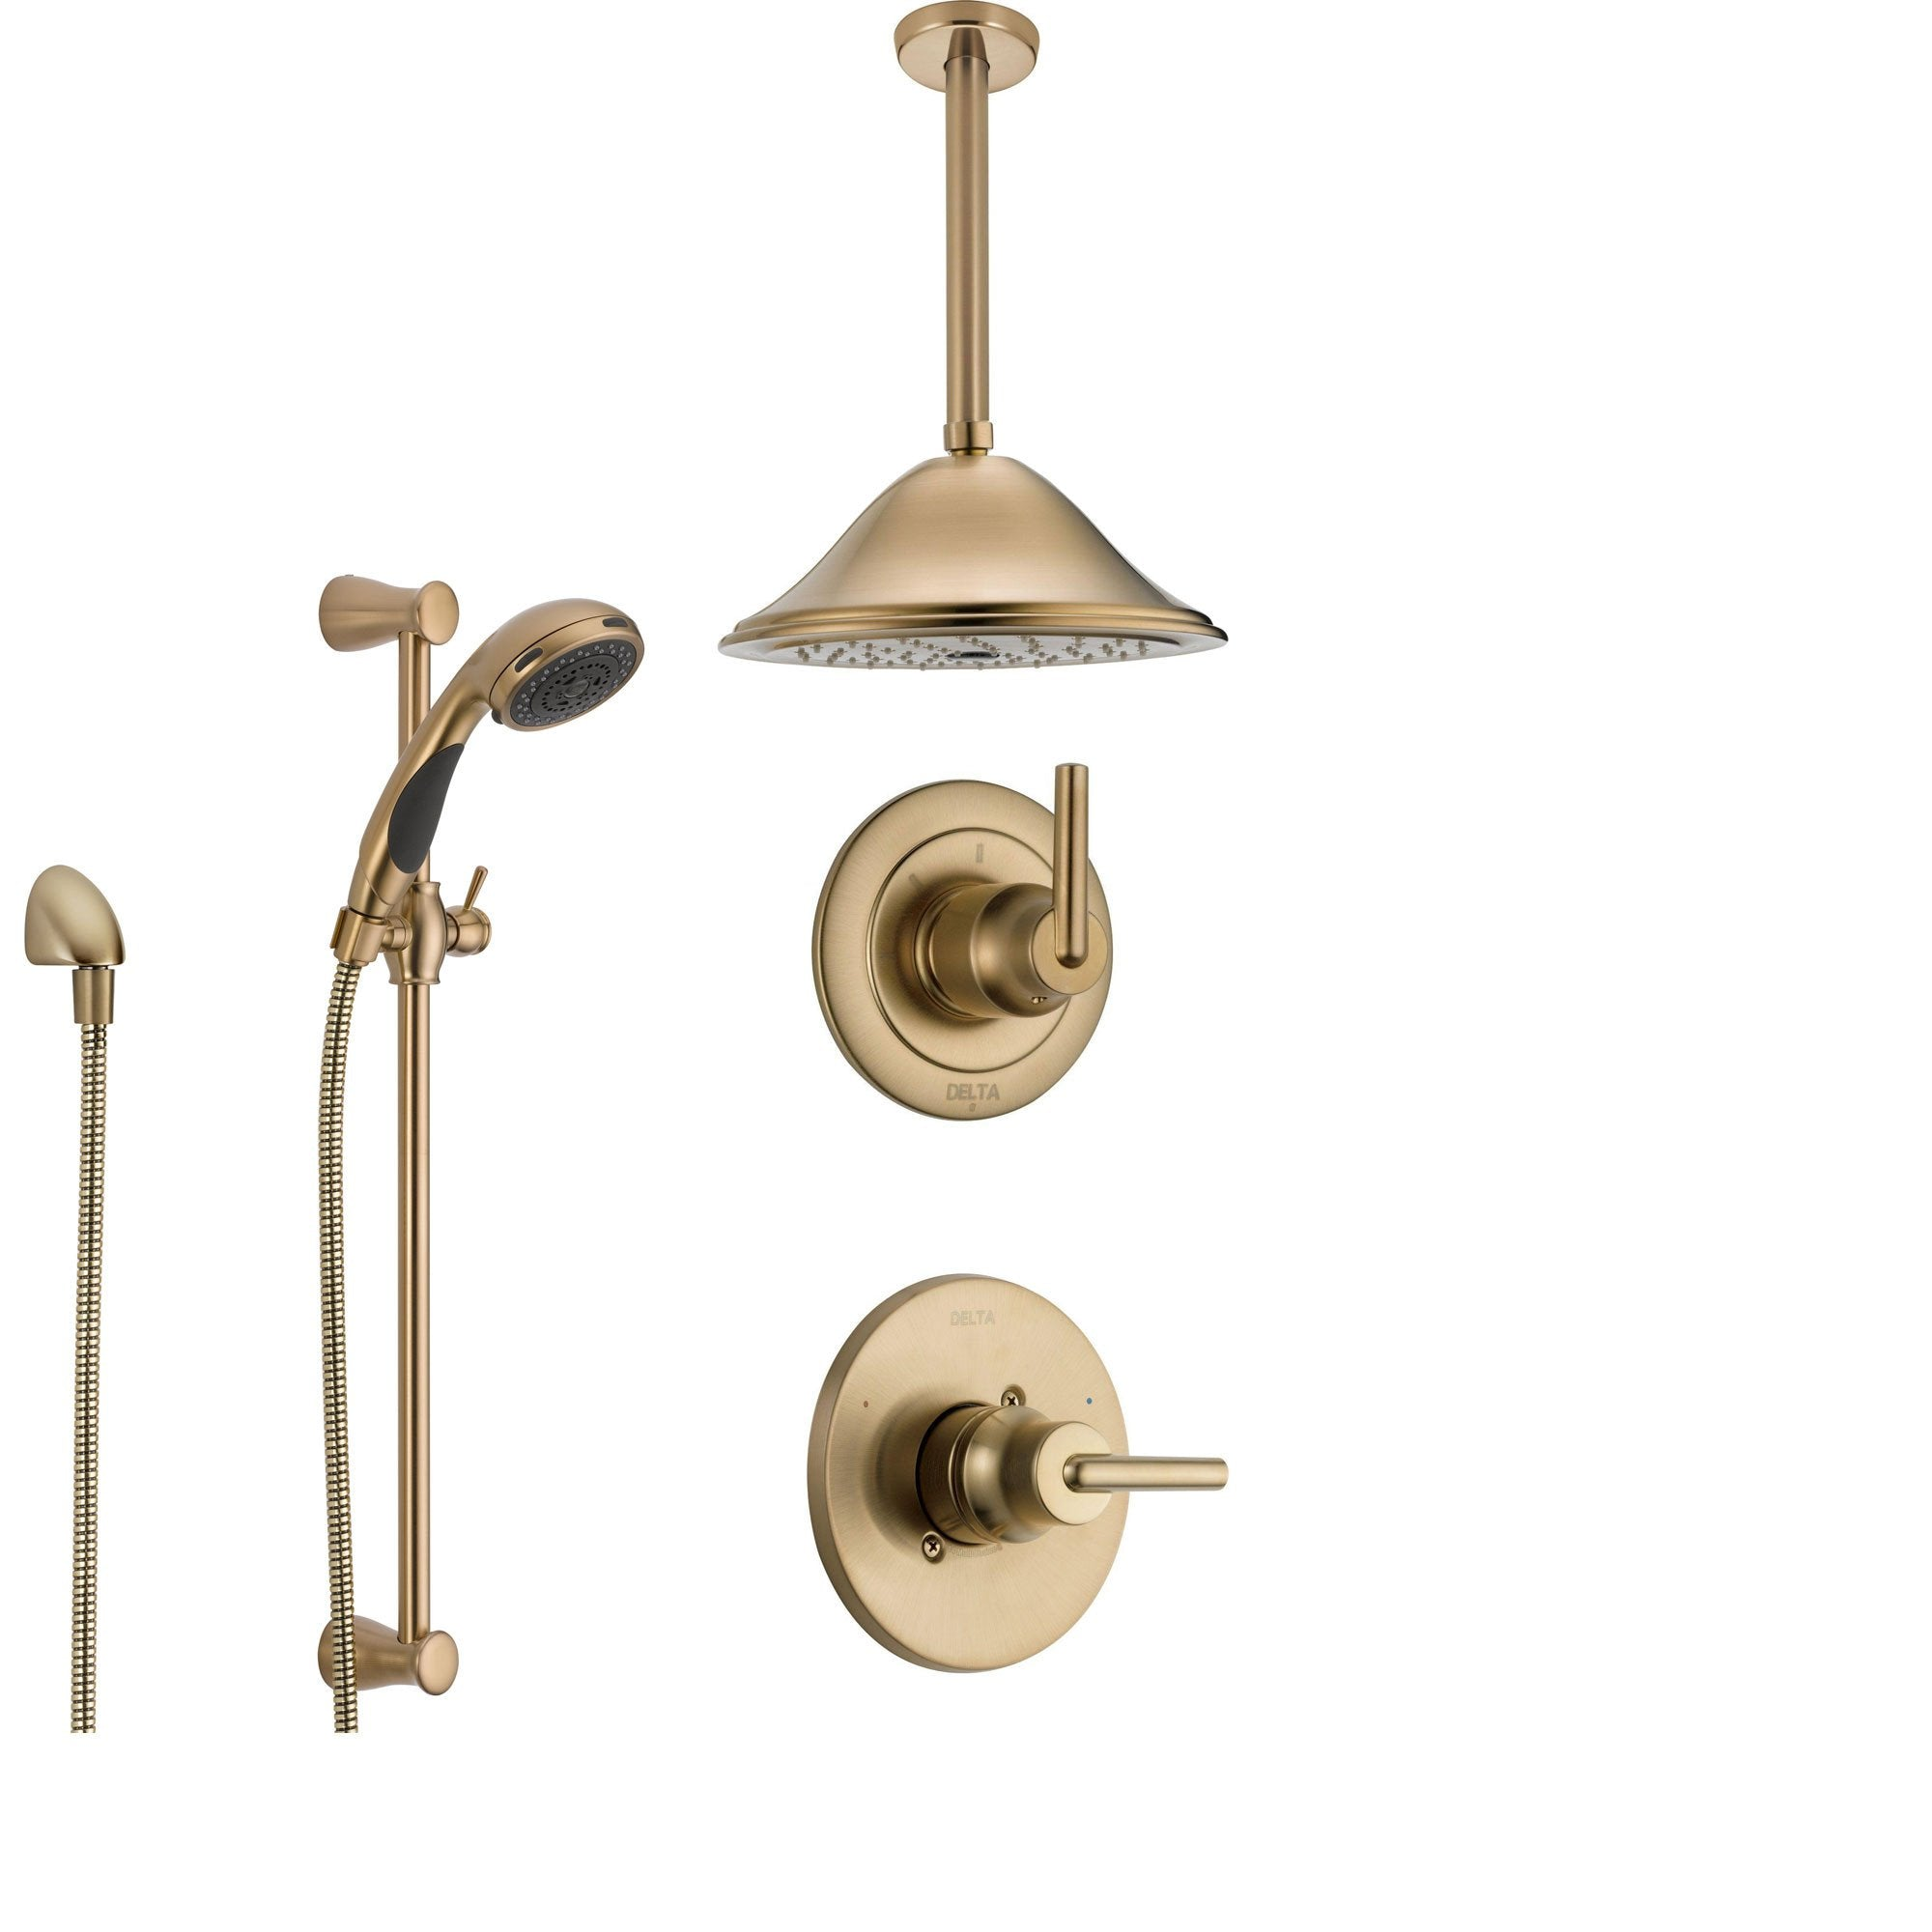 Delta Trinsic Champagne Bronze Shower System with Normal Shower Handle, 3-setting Diverter, Large Ceiling Mount Rain Showerhead, and Handheld Spray SS145982CZ